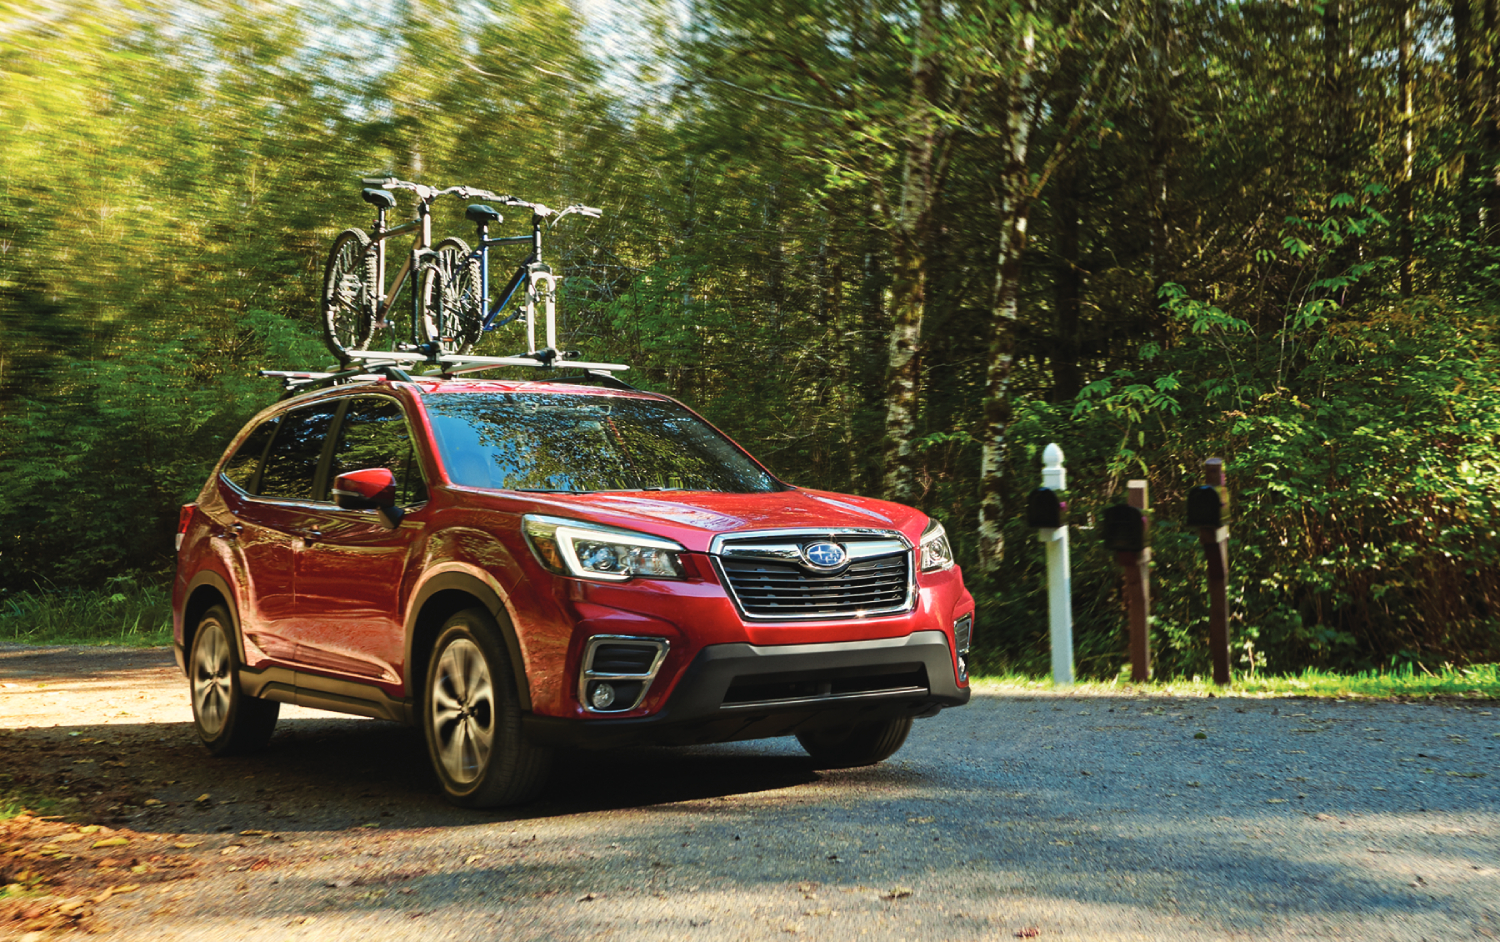 Red 2021 Subaru Forester with two bikes on top, the Forester is one of the best SUVs under $30,000